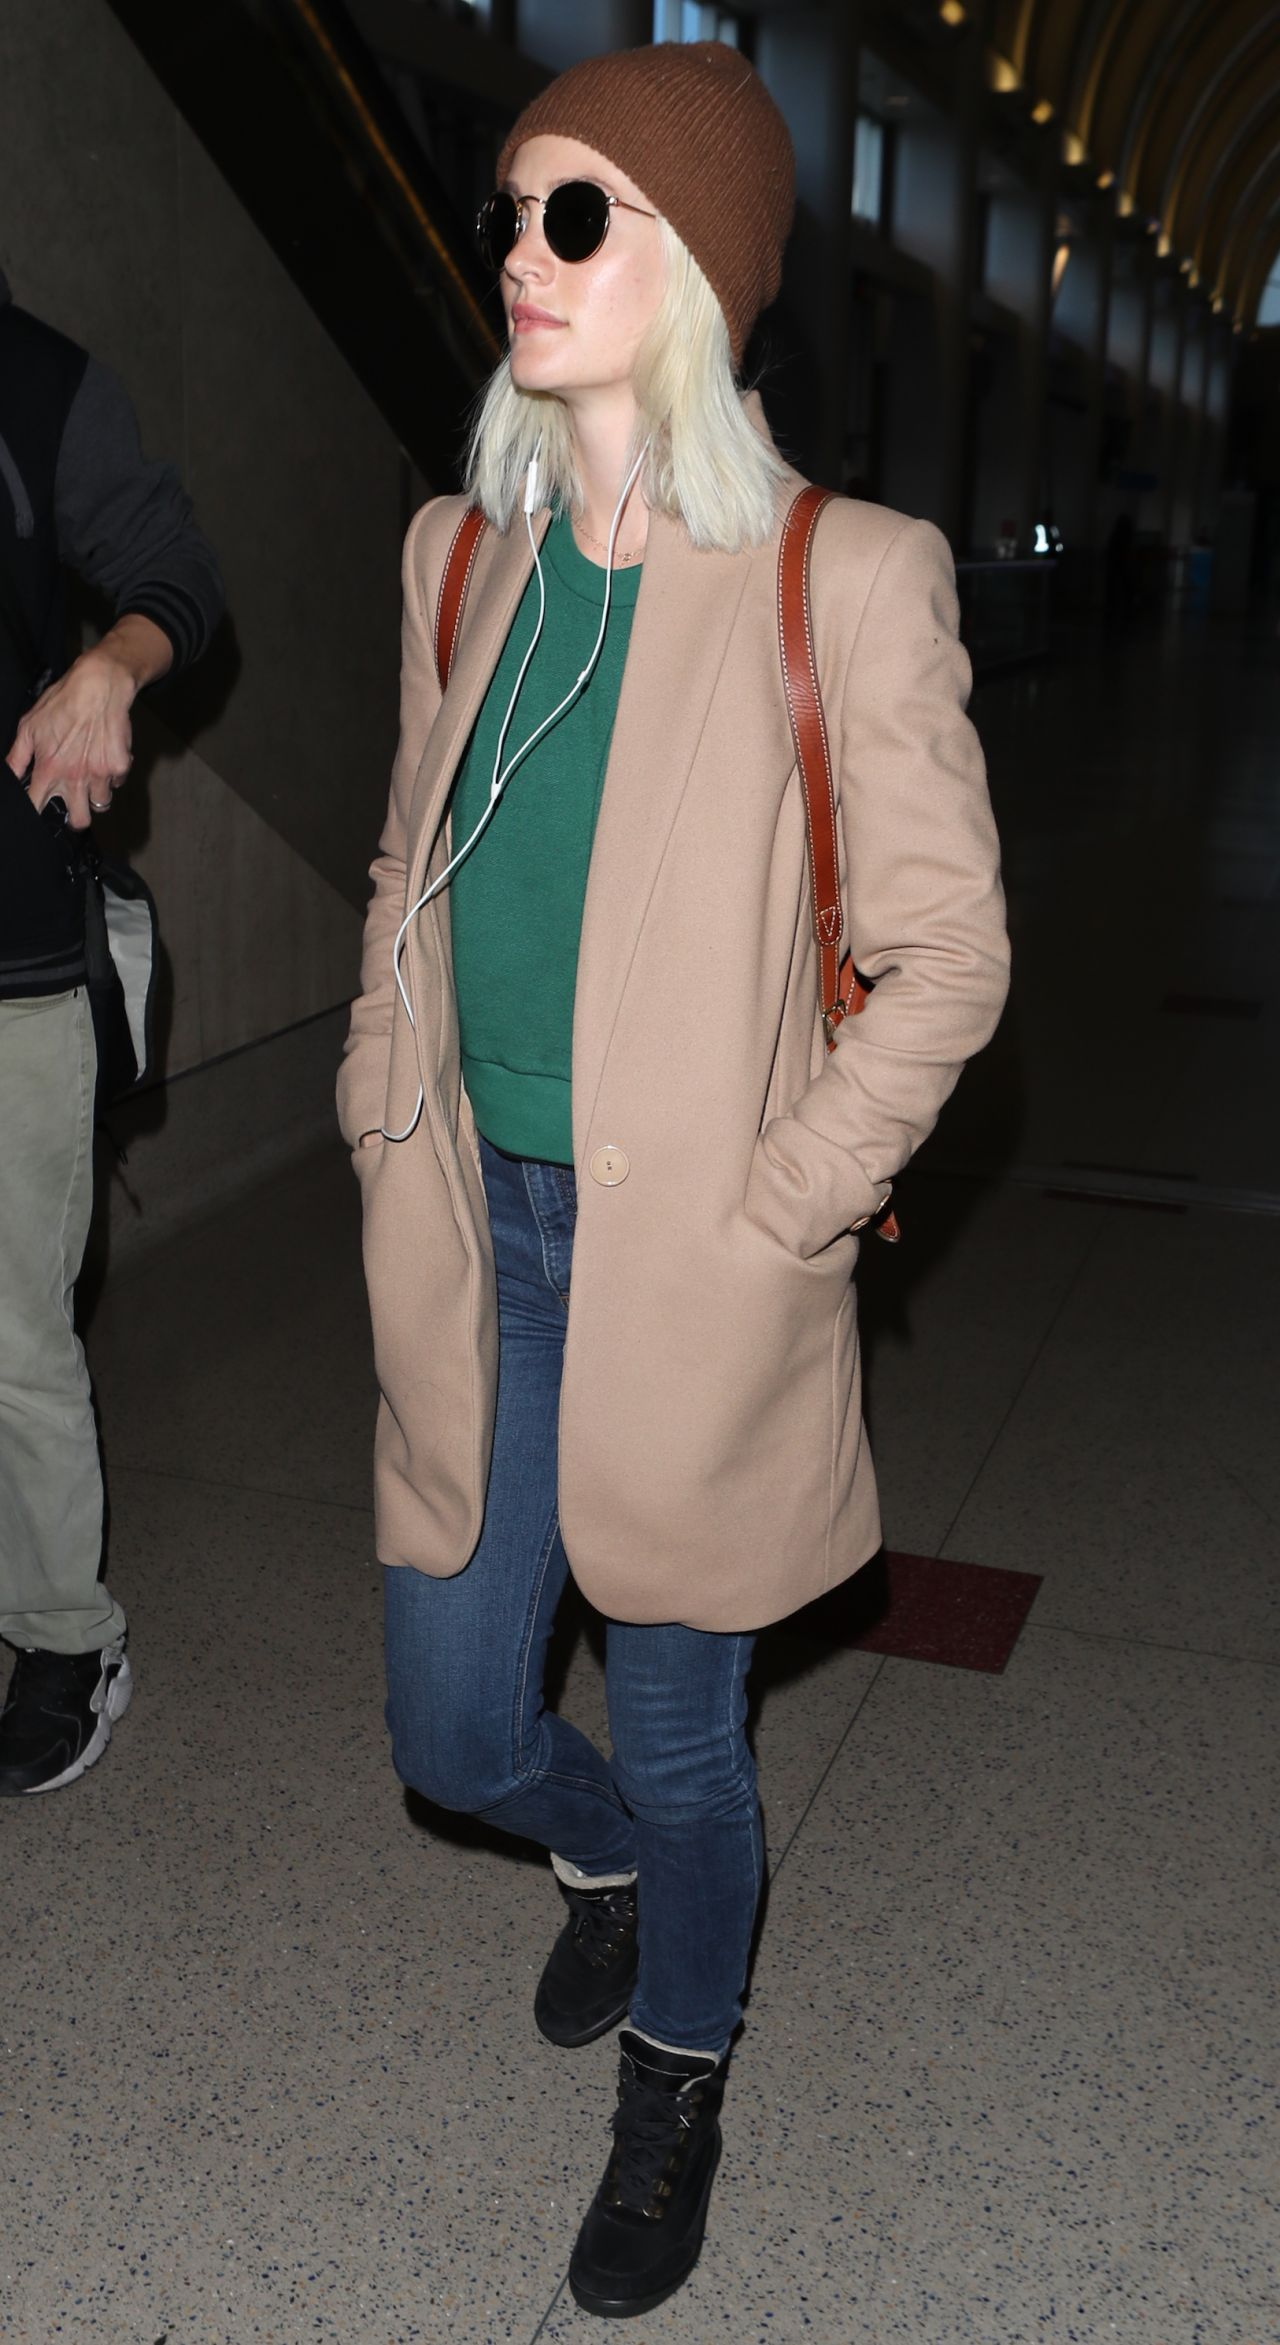 leighton meester at lax in los angeles 04032018